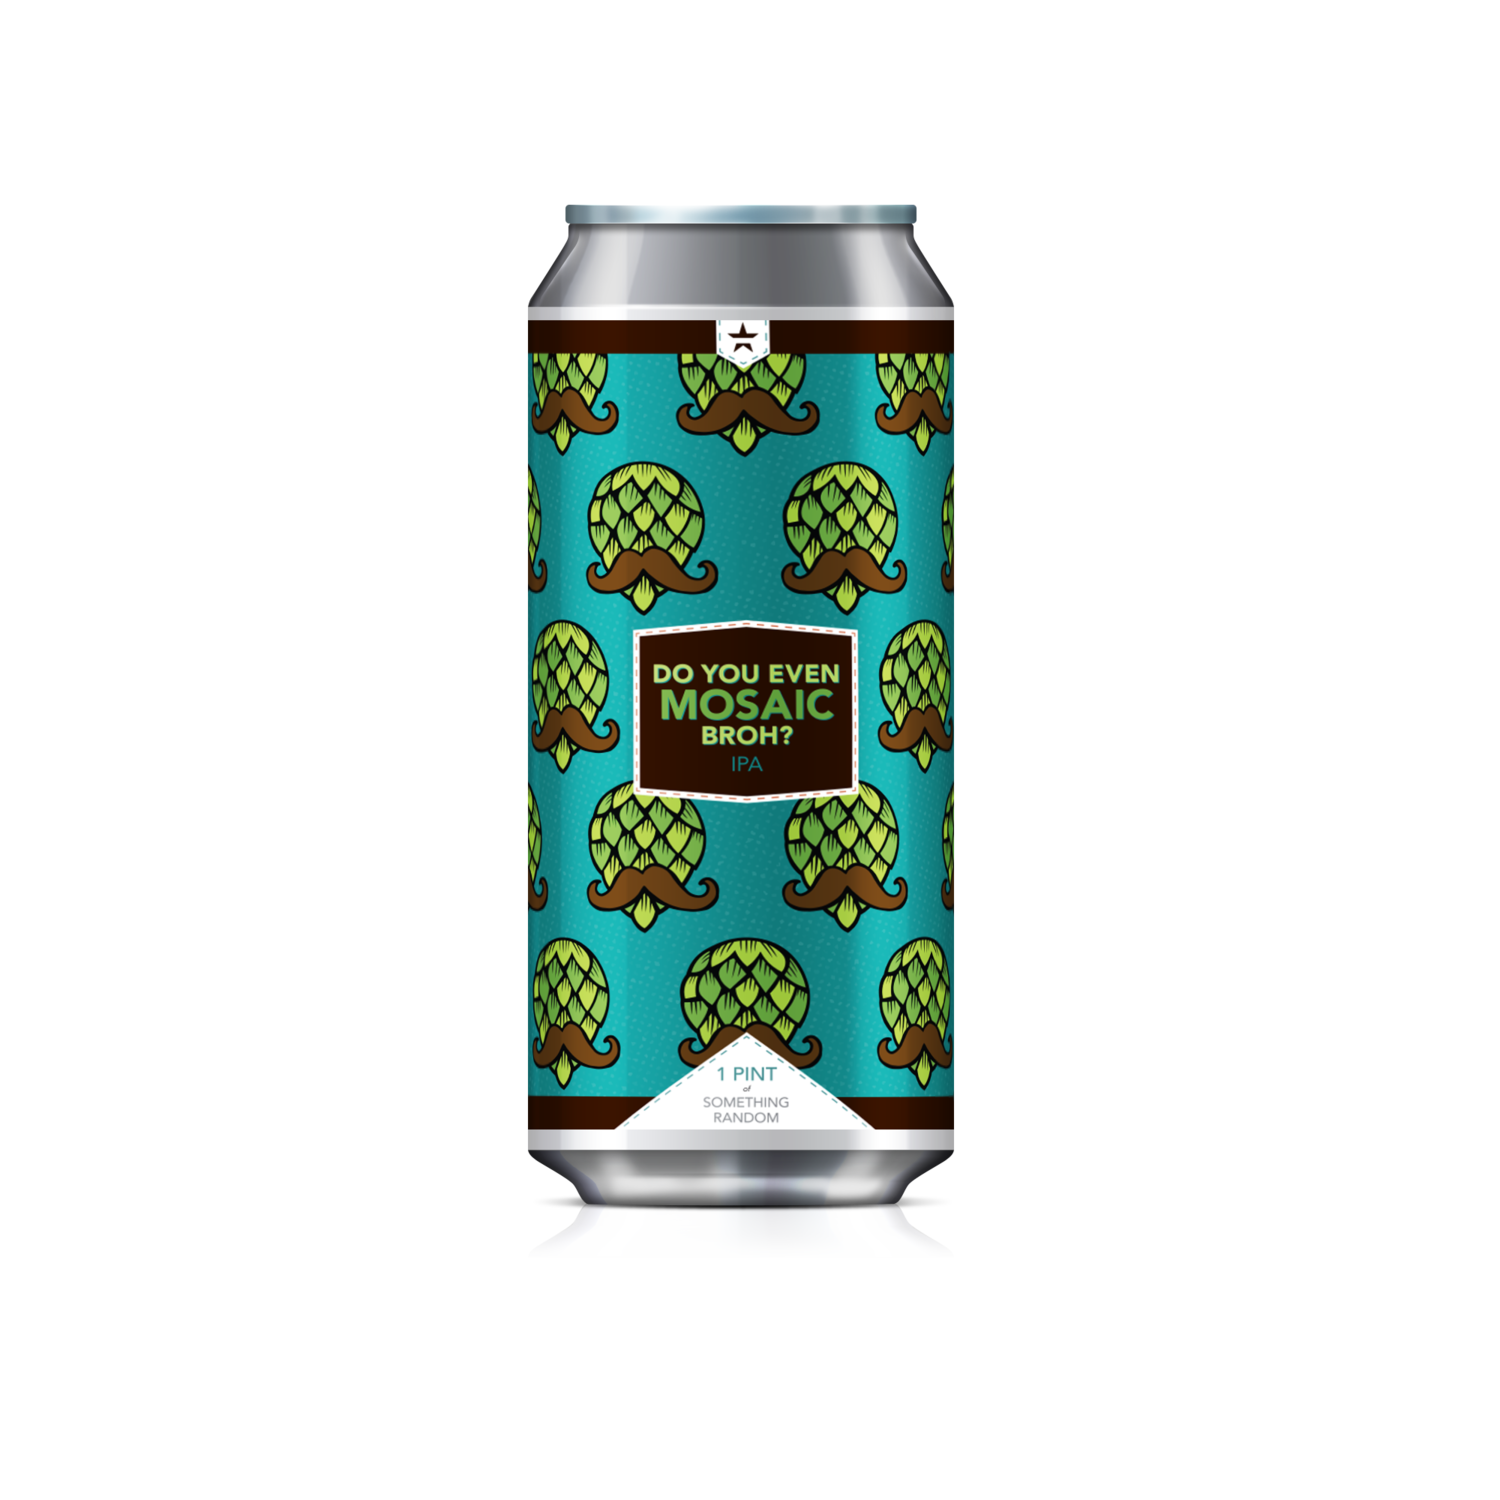 Do You Even Mosaic Broh? Case (6) 4-Packs *Shipping for CA Only